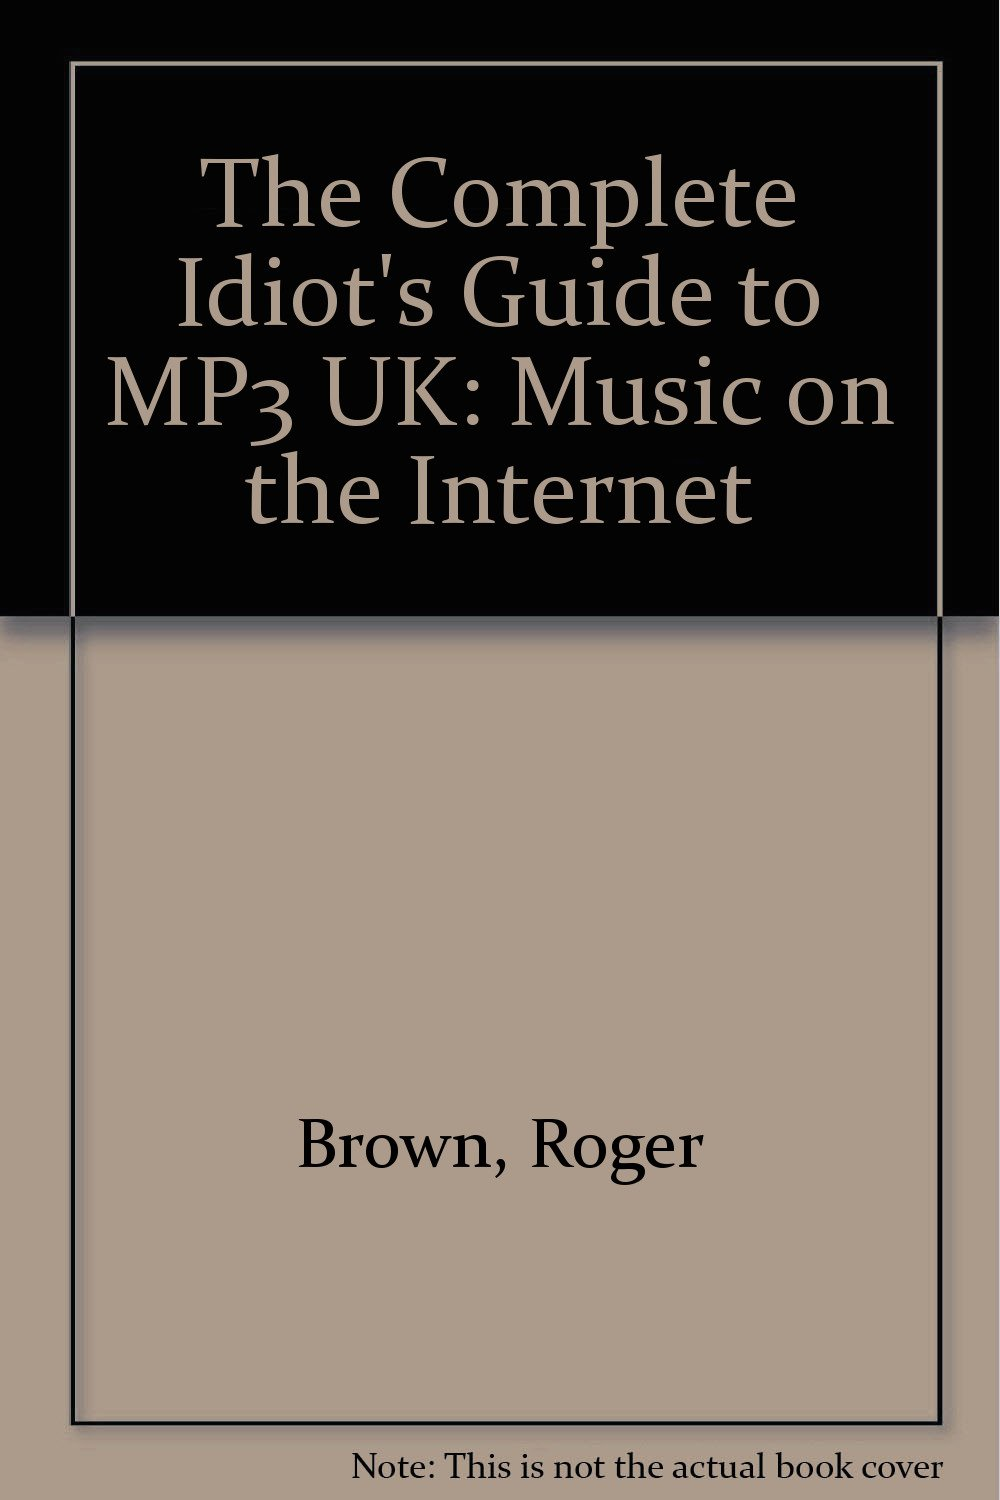 Complete Idiot's Guide to Music on the Internet with MP3 - UK Edition (The Complete Idiot's Guide) ebook